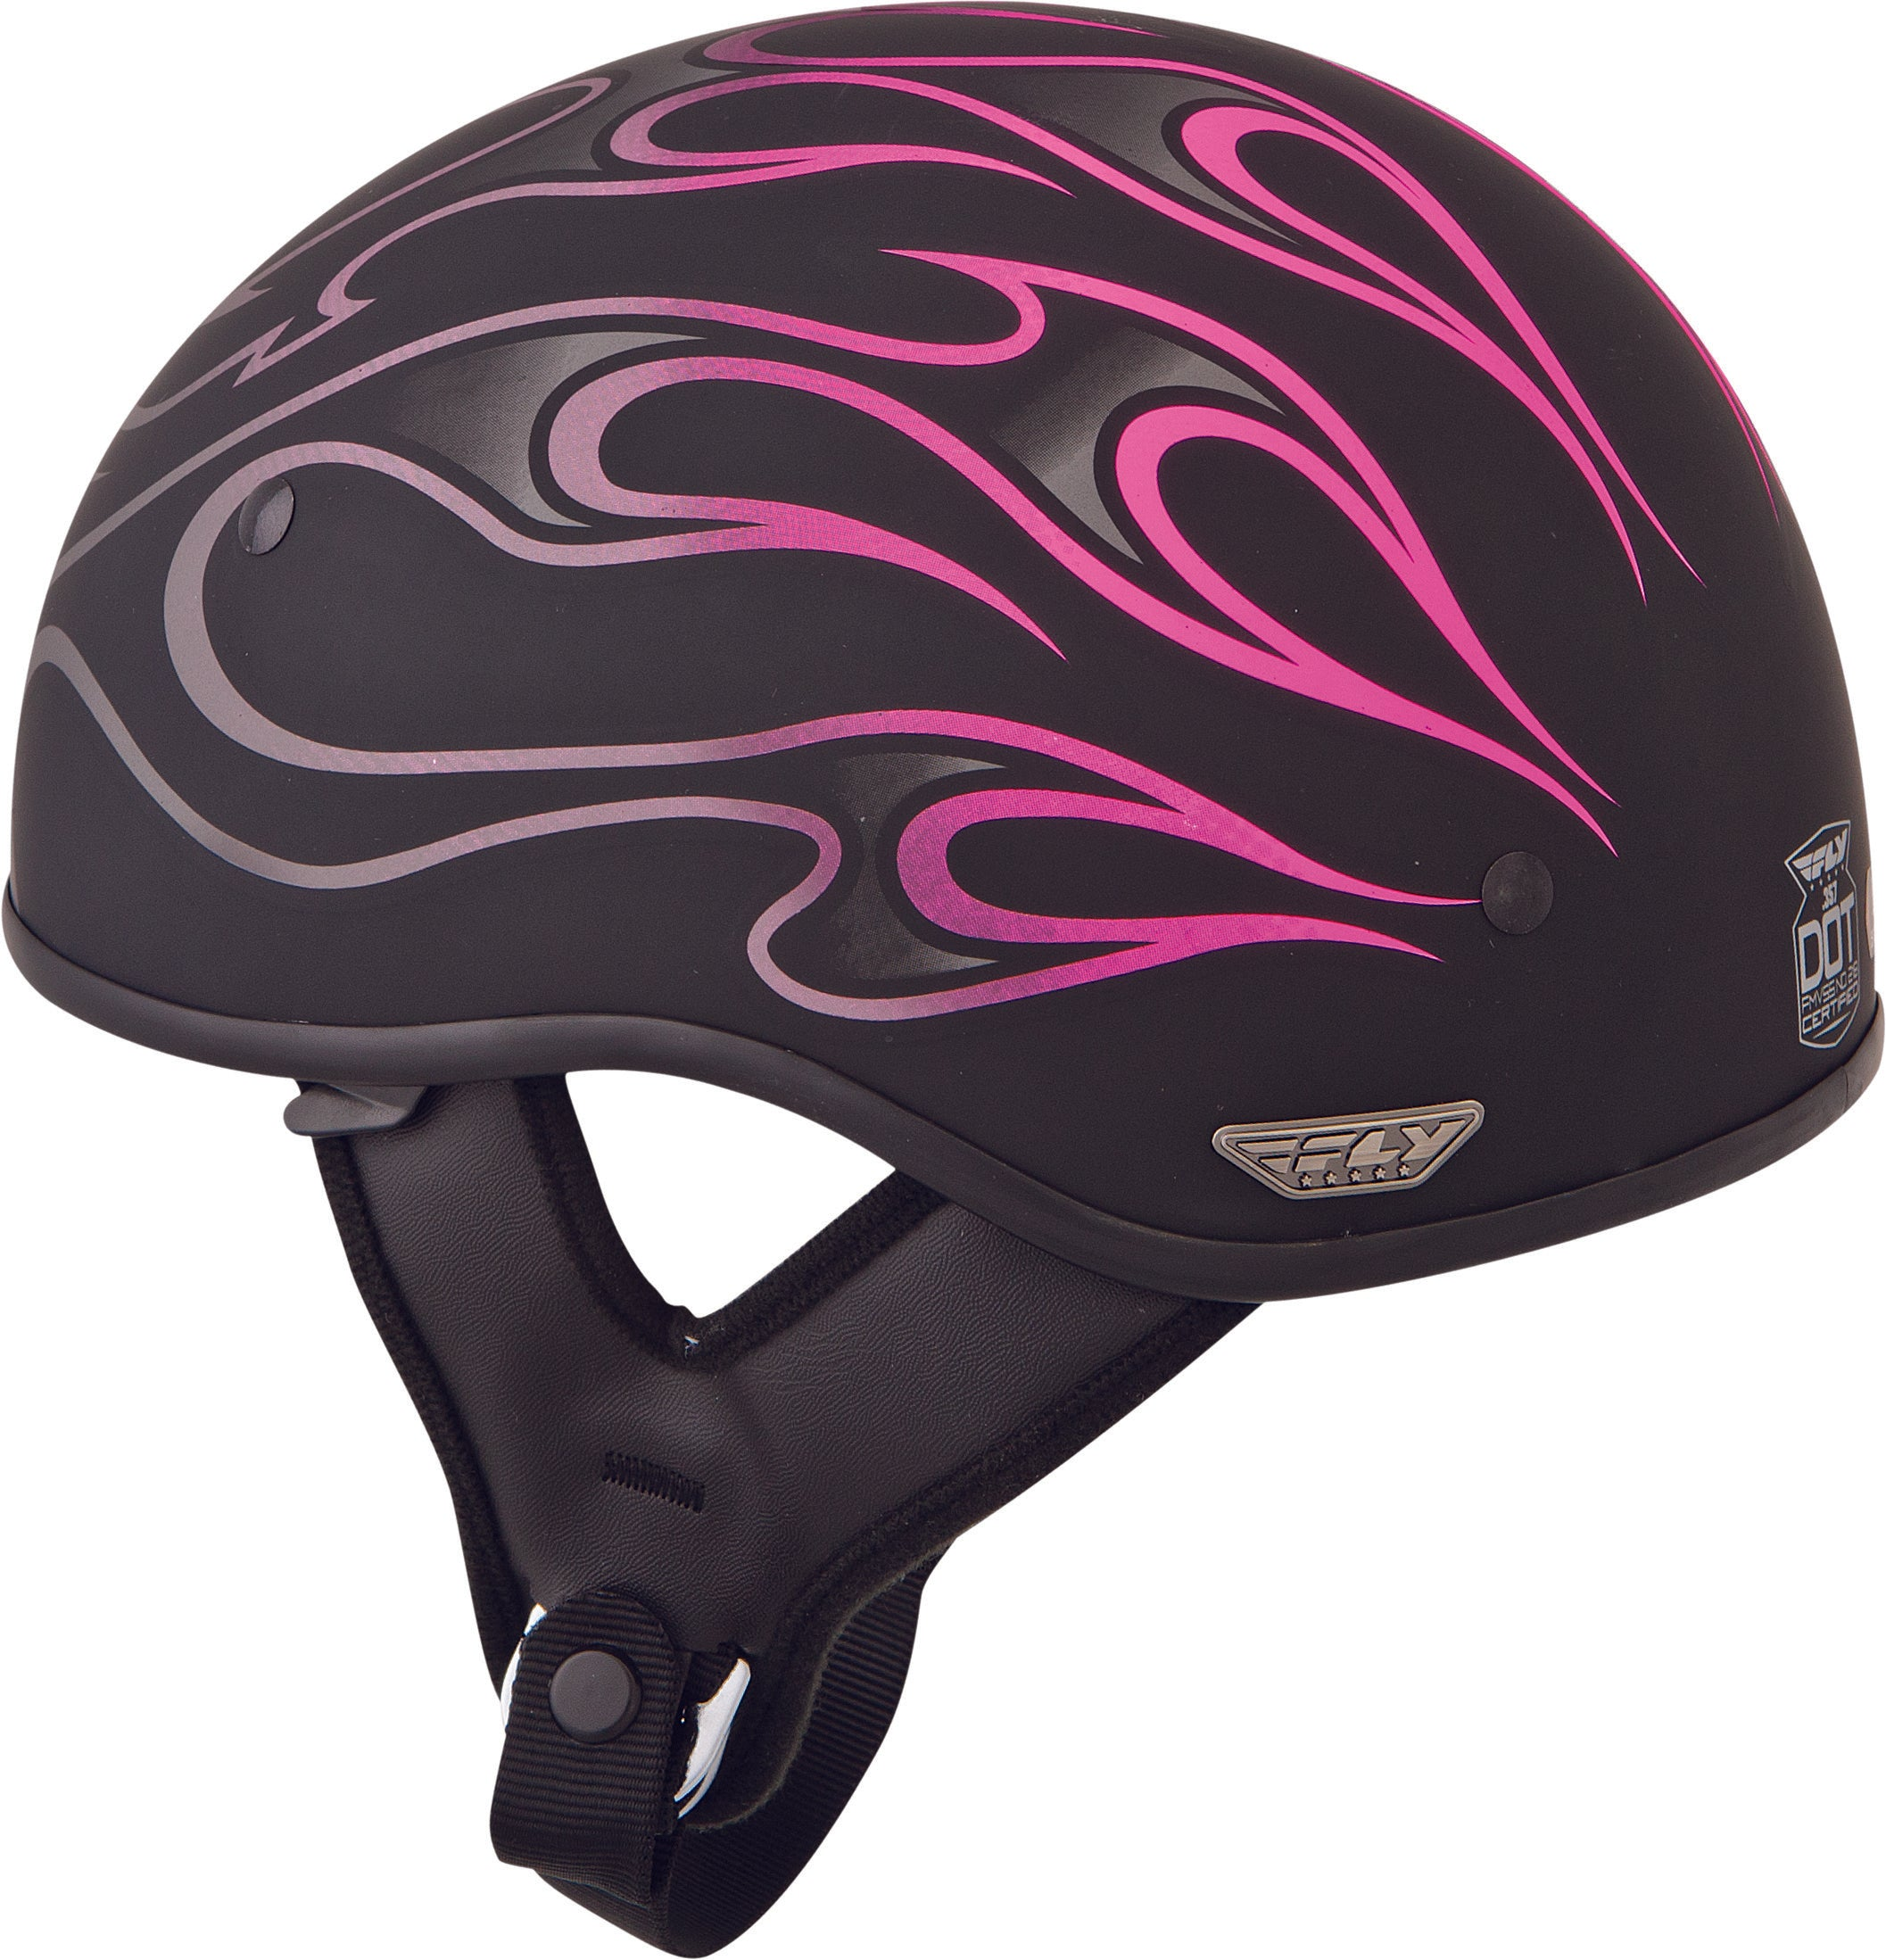 Fly Street .357 Flame Half Motorcycle Helmet Dot Approved Black multi Colors